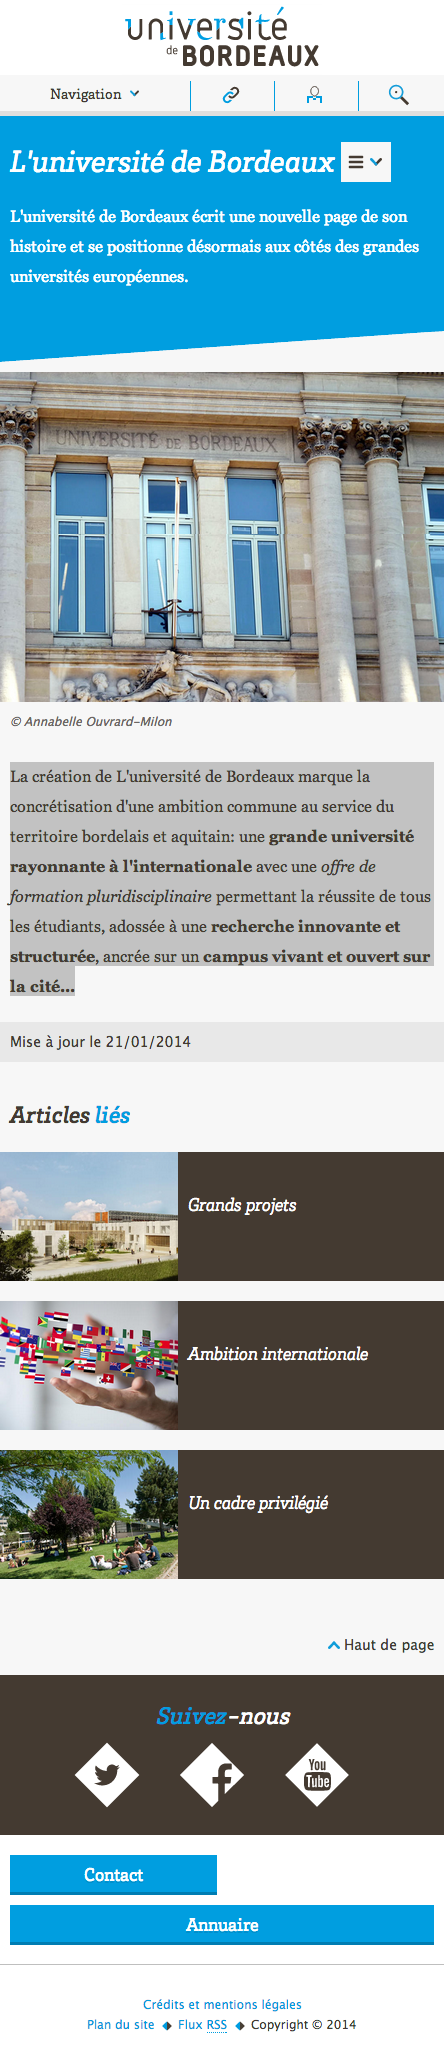 Refonte du site internet de l'Université de Bordeaux